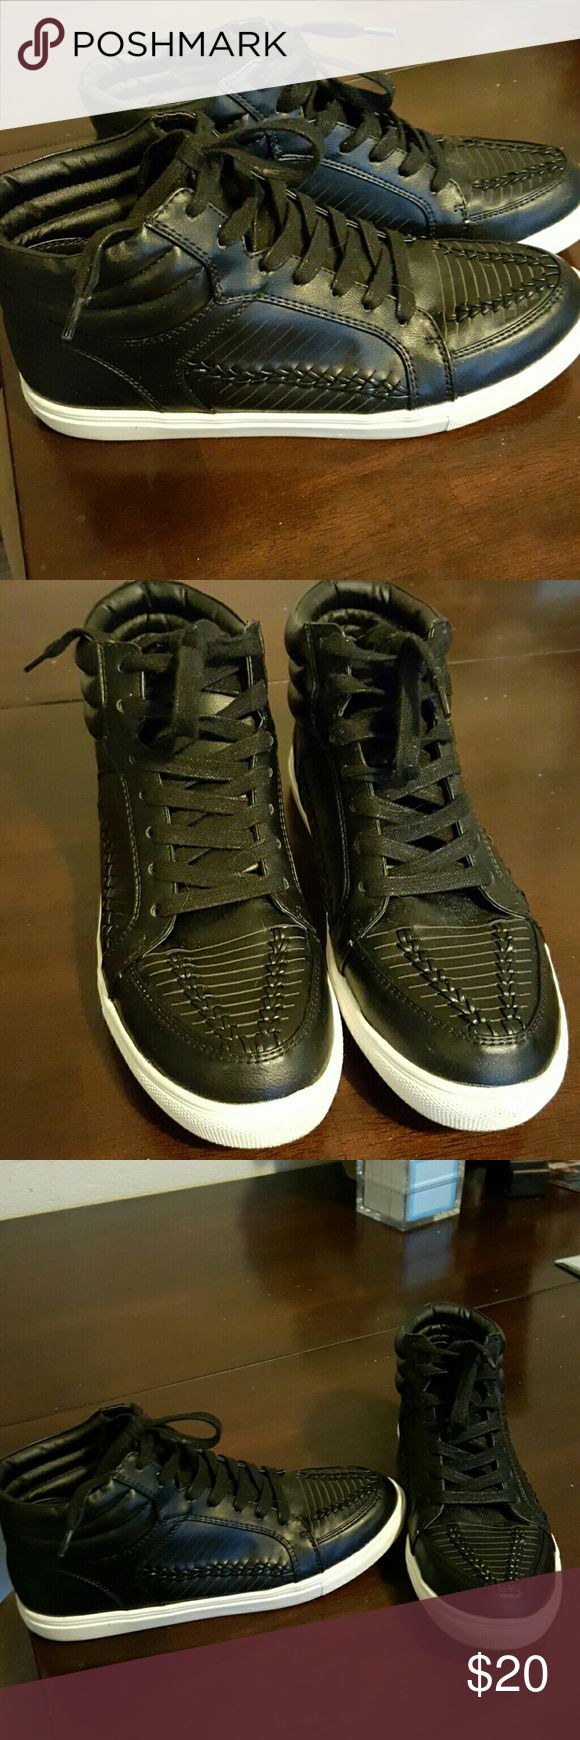 Ladies High top Sneakers Black w/ white soles,weaved pattern on sides and toe. Super cute and only worn 2x Fergalicious Shoes Sneakers